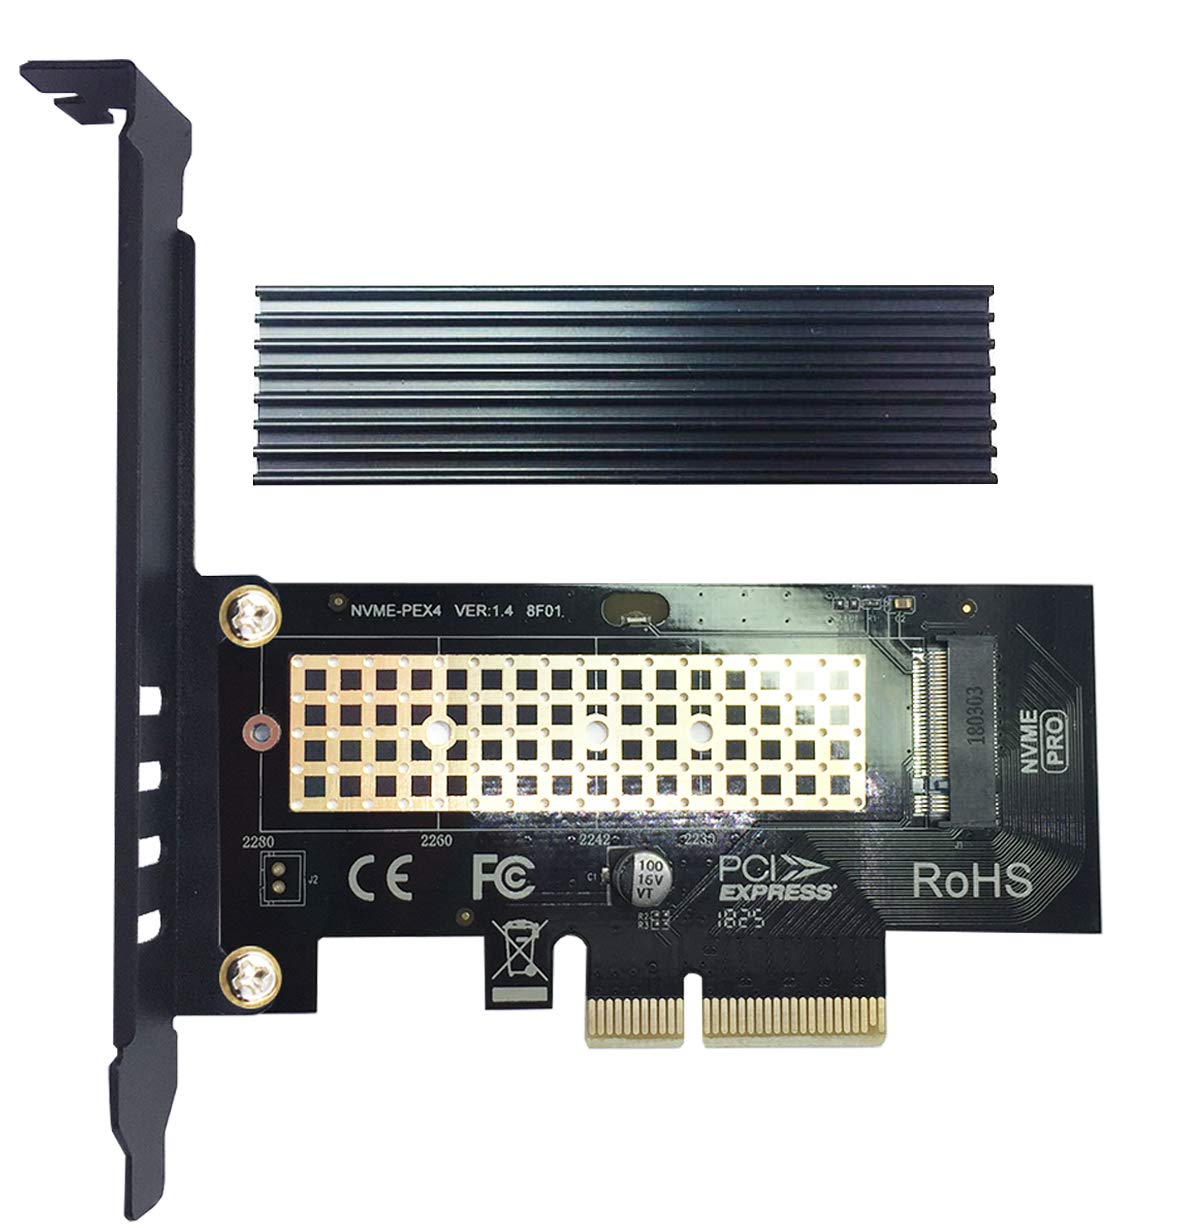 M.2 PCIE NVME Adapter Card with Full Covering Aluminum